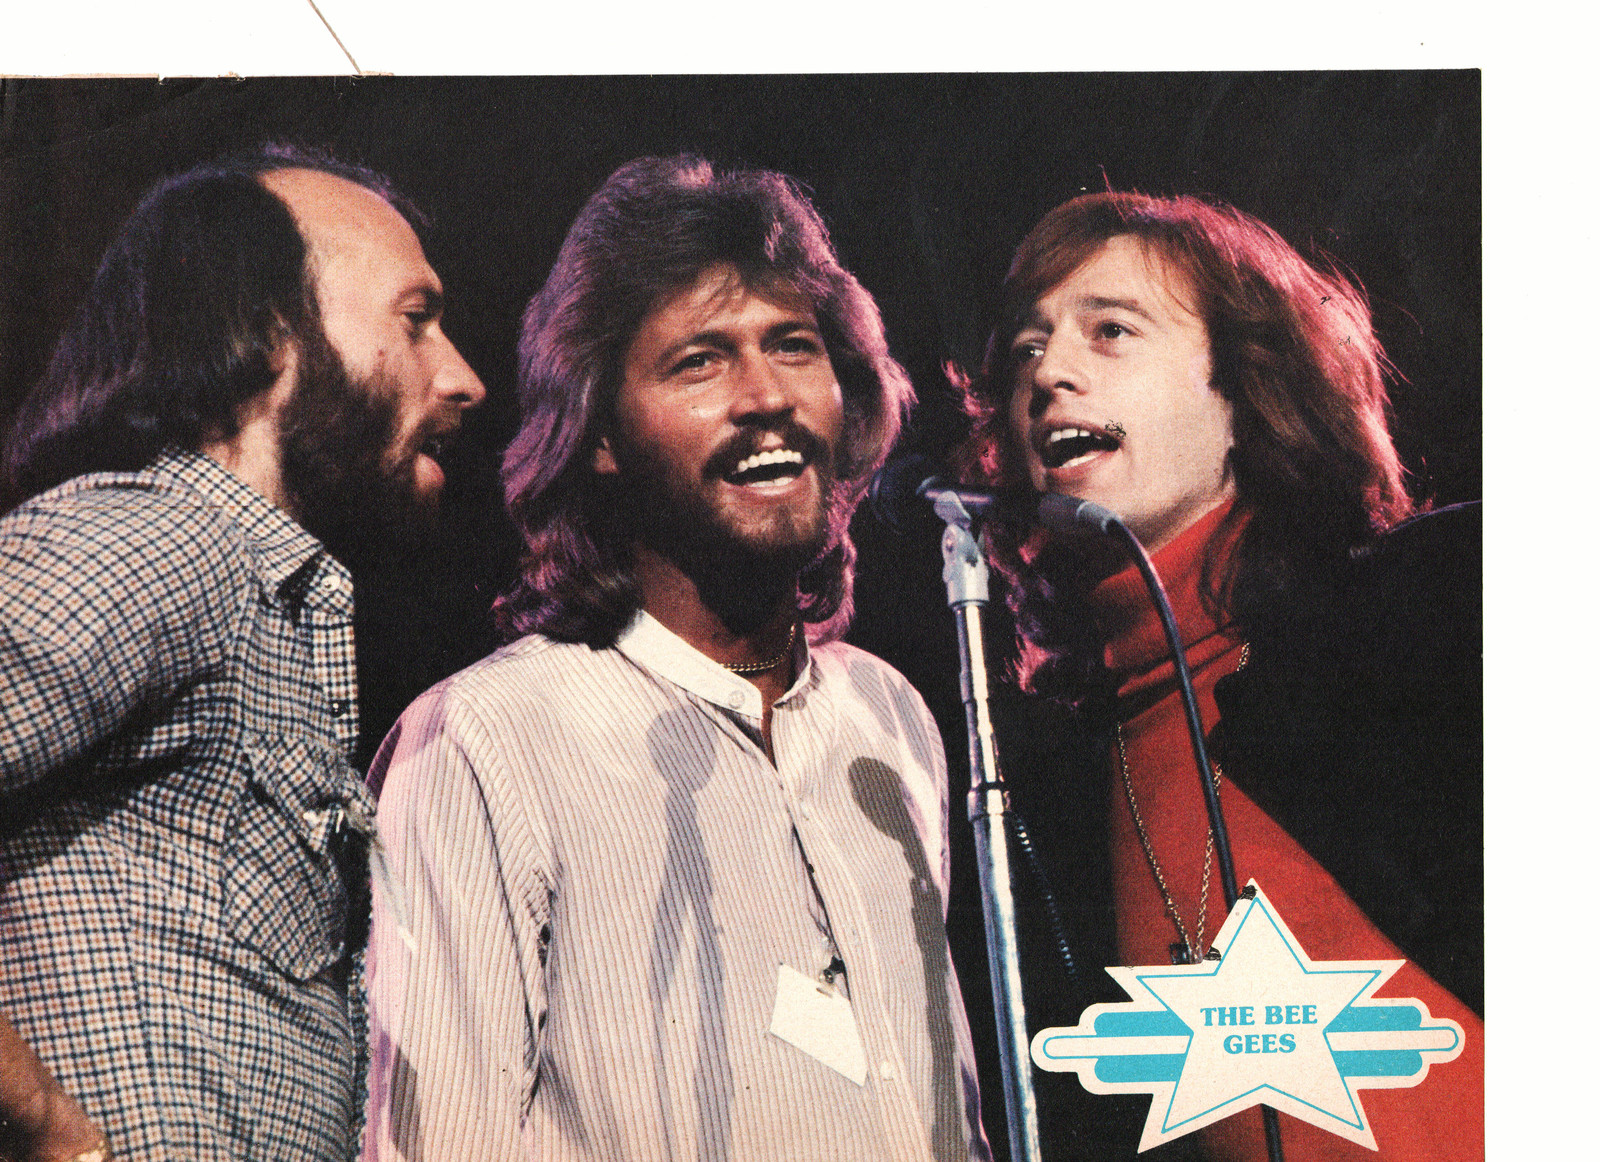 Bee Gees John Schneider teen magazine pinup clipping singing in the studio 70's